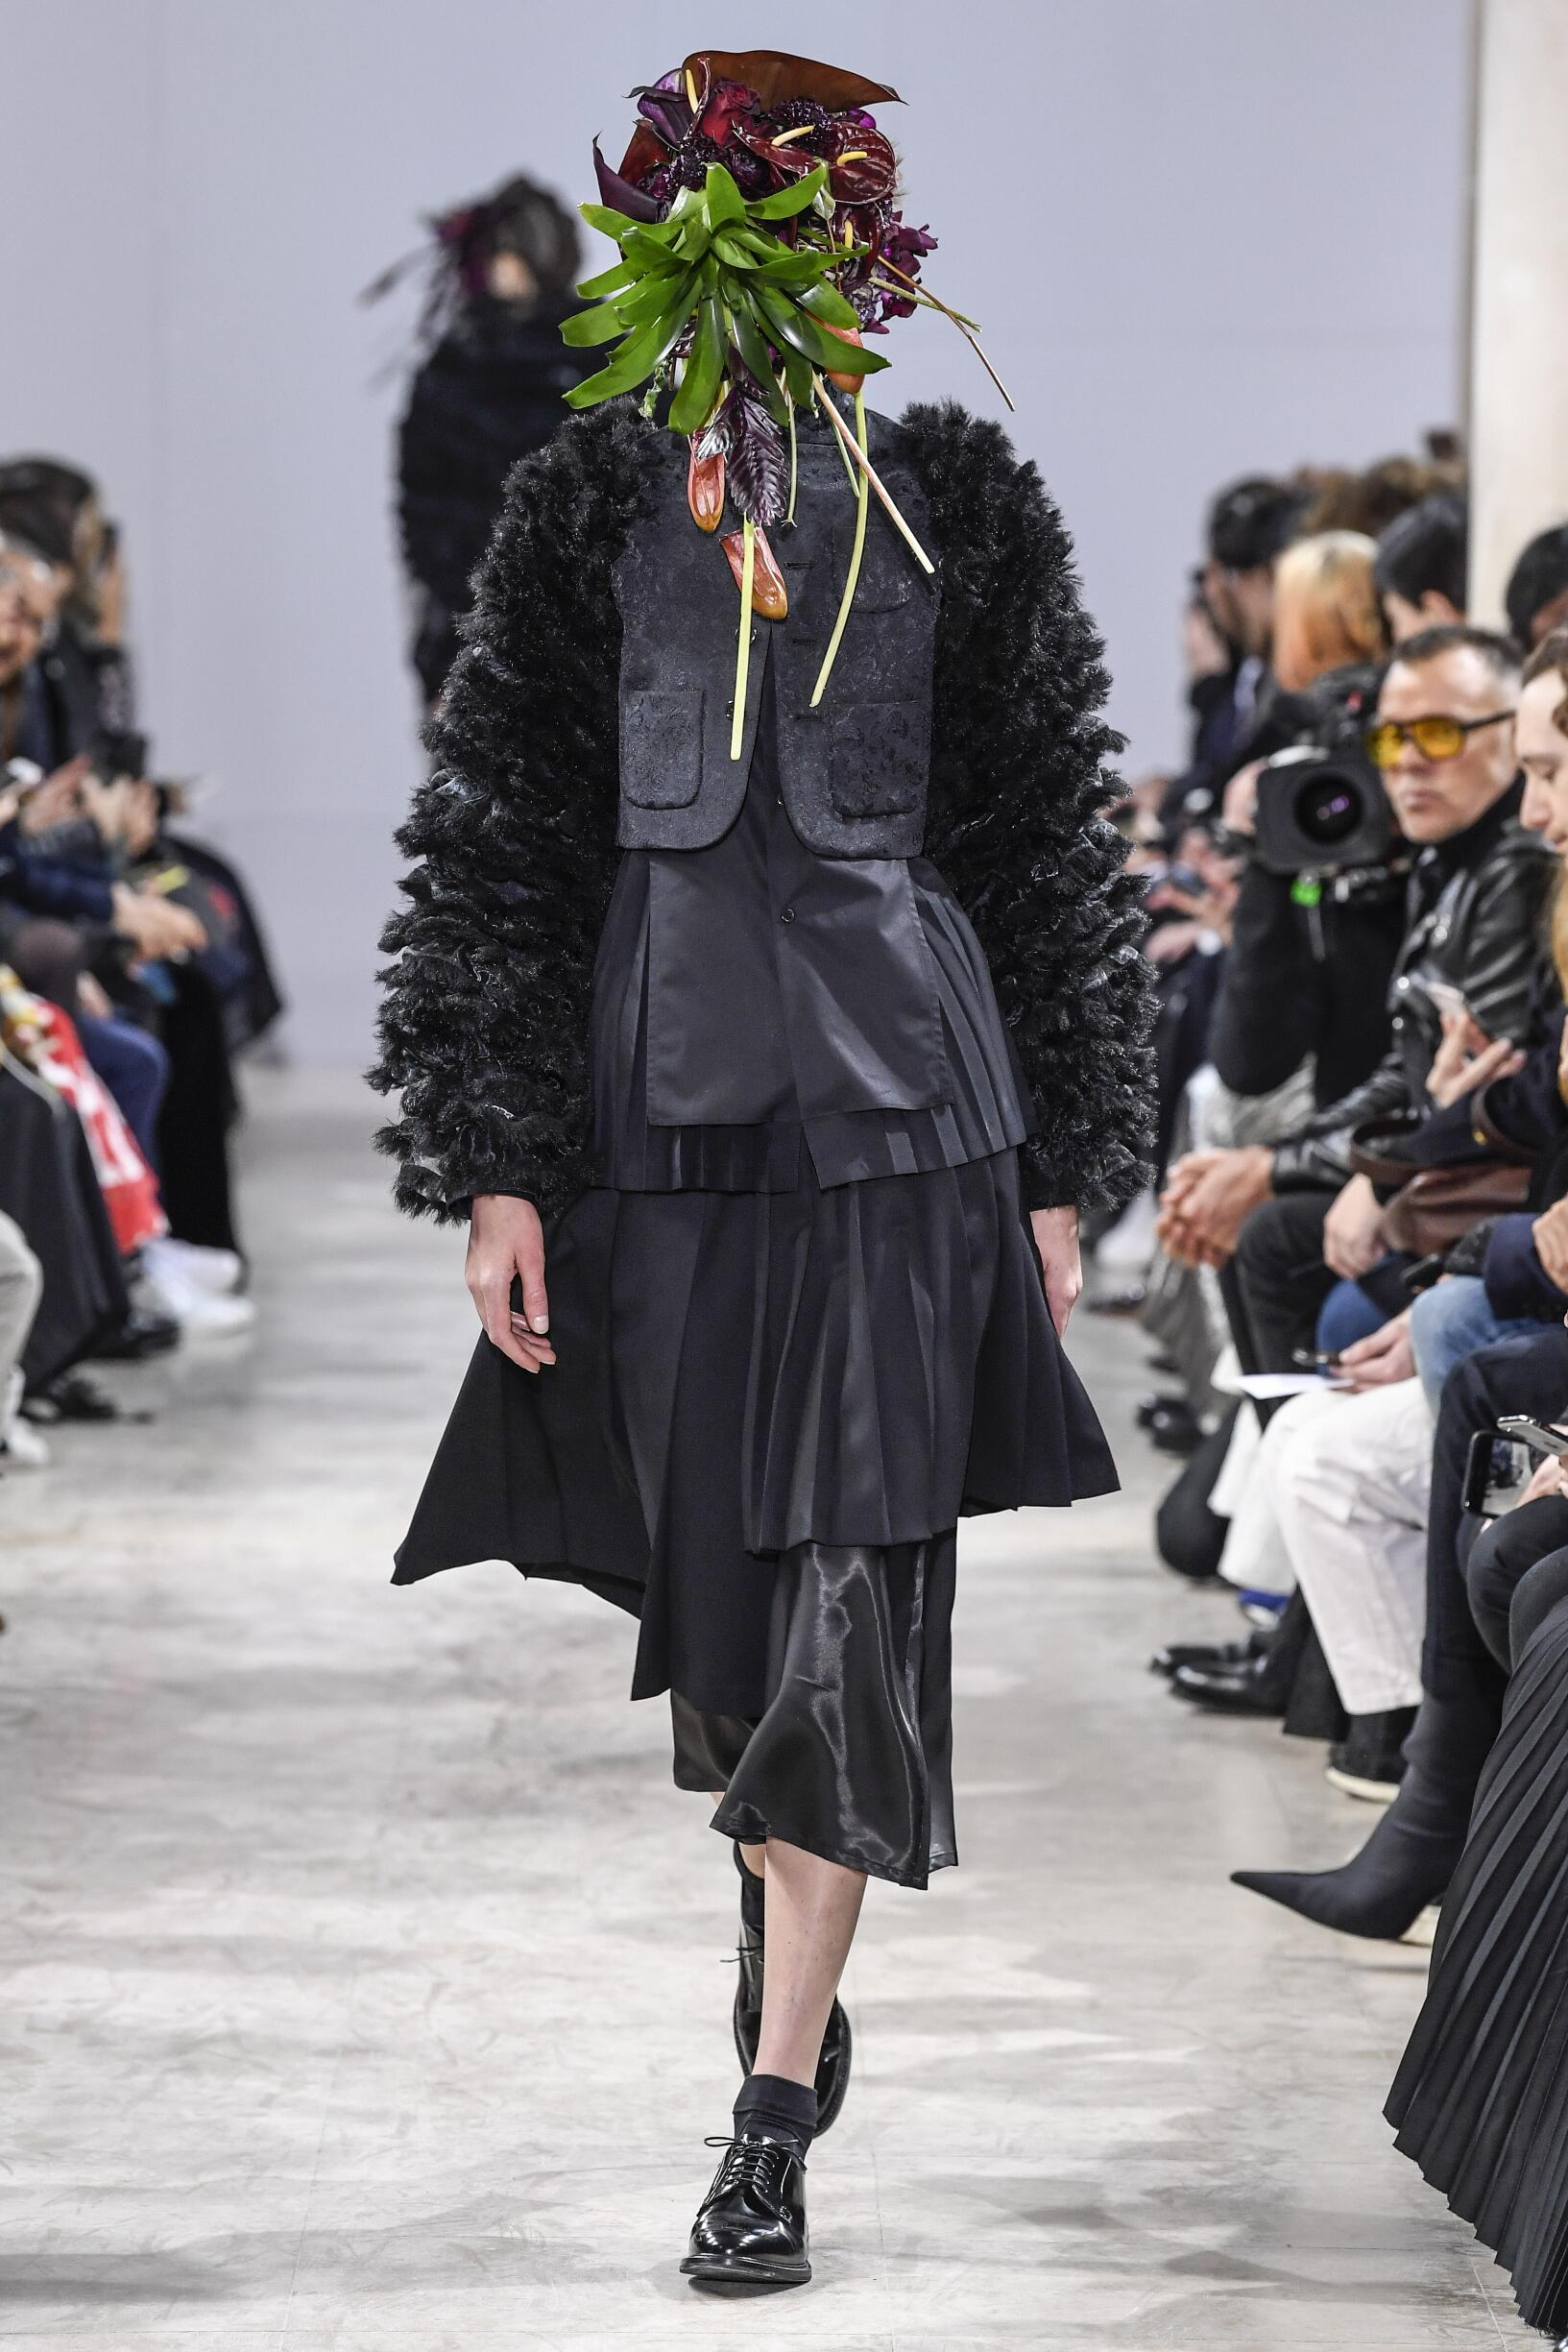 Woman FW 2018-19 Fashion Show Noir Kei Ninomiya